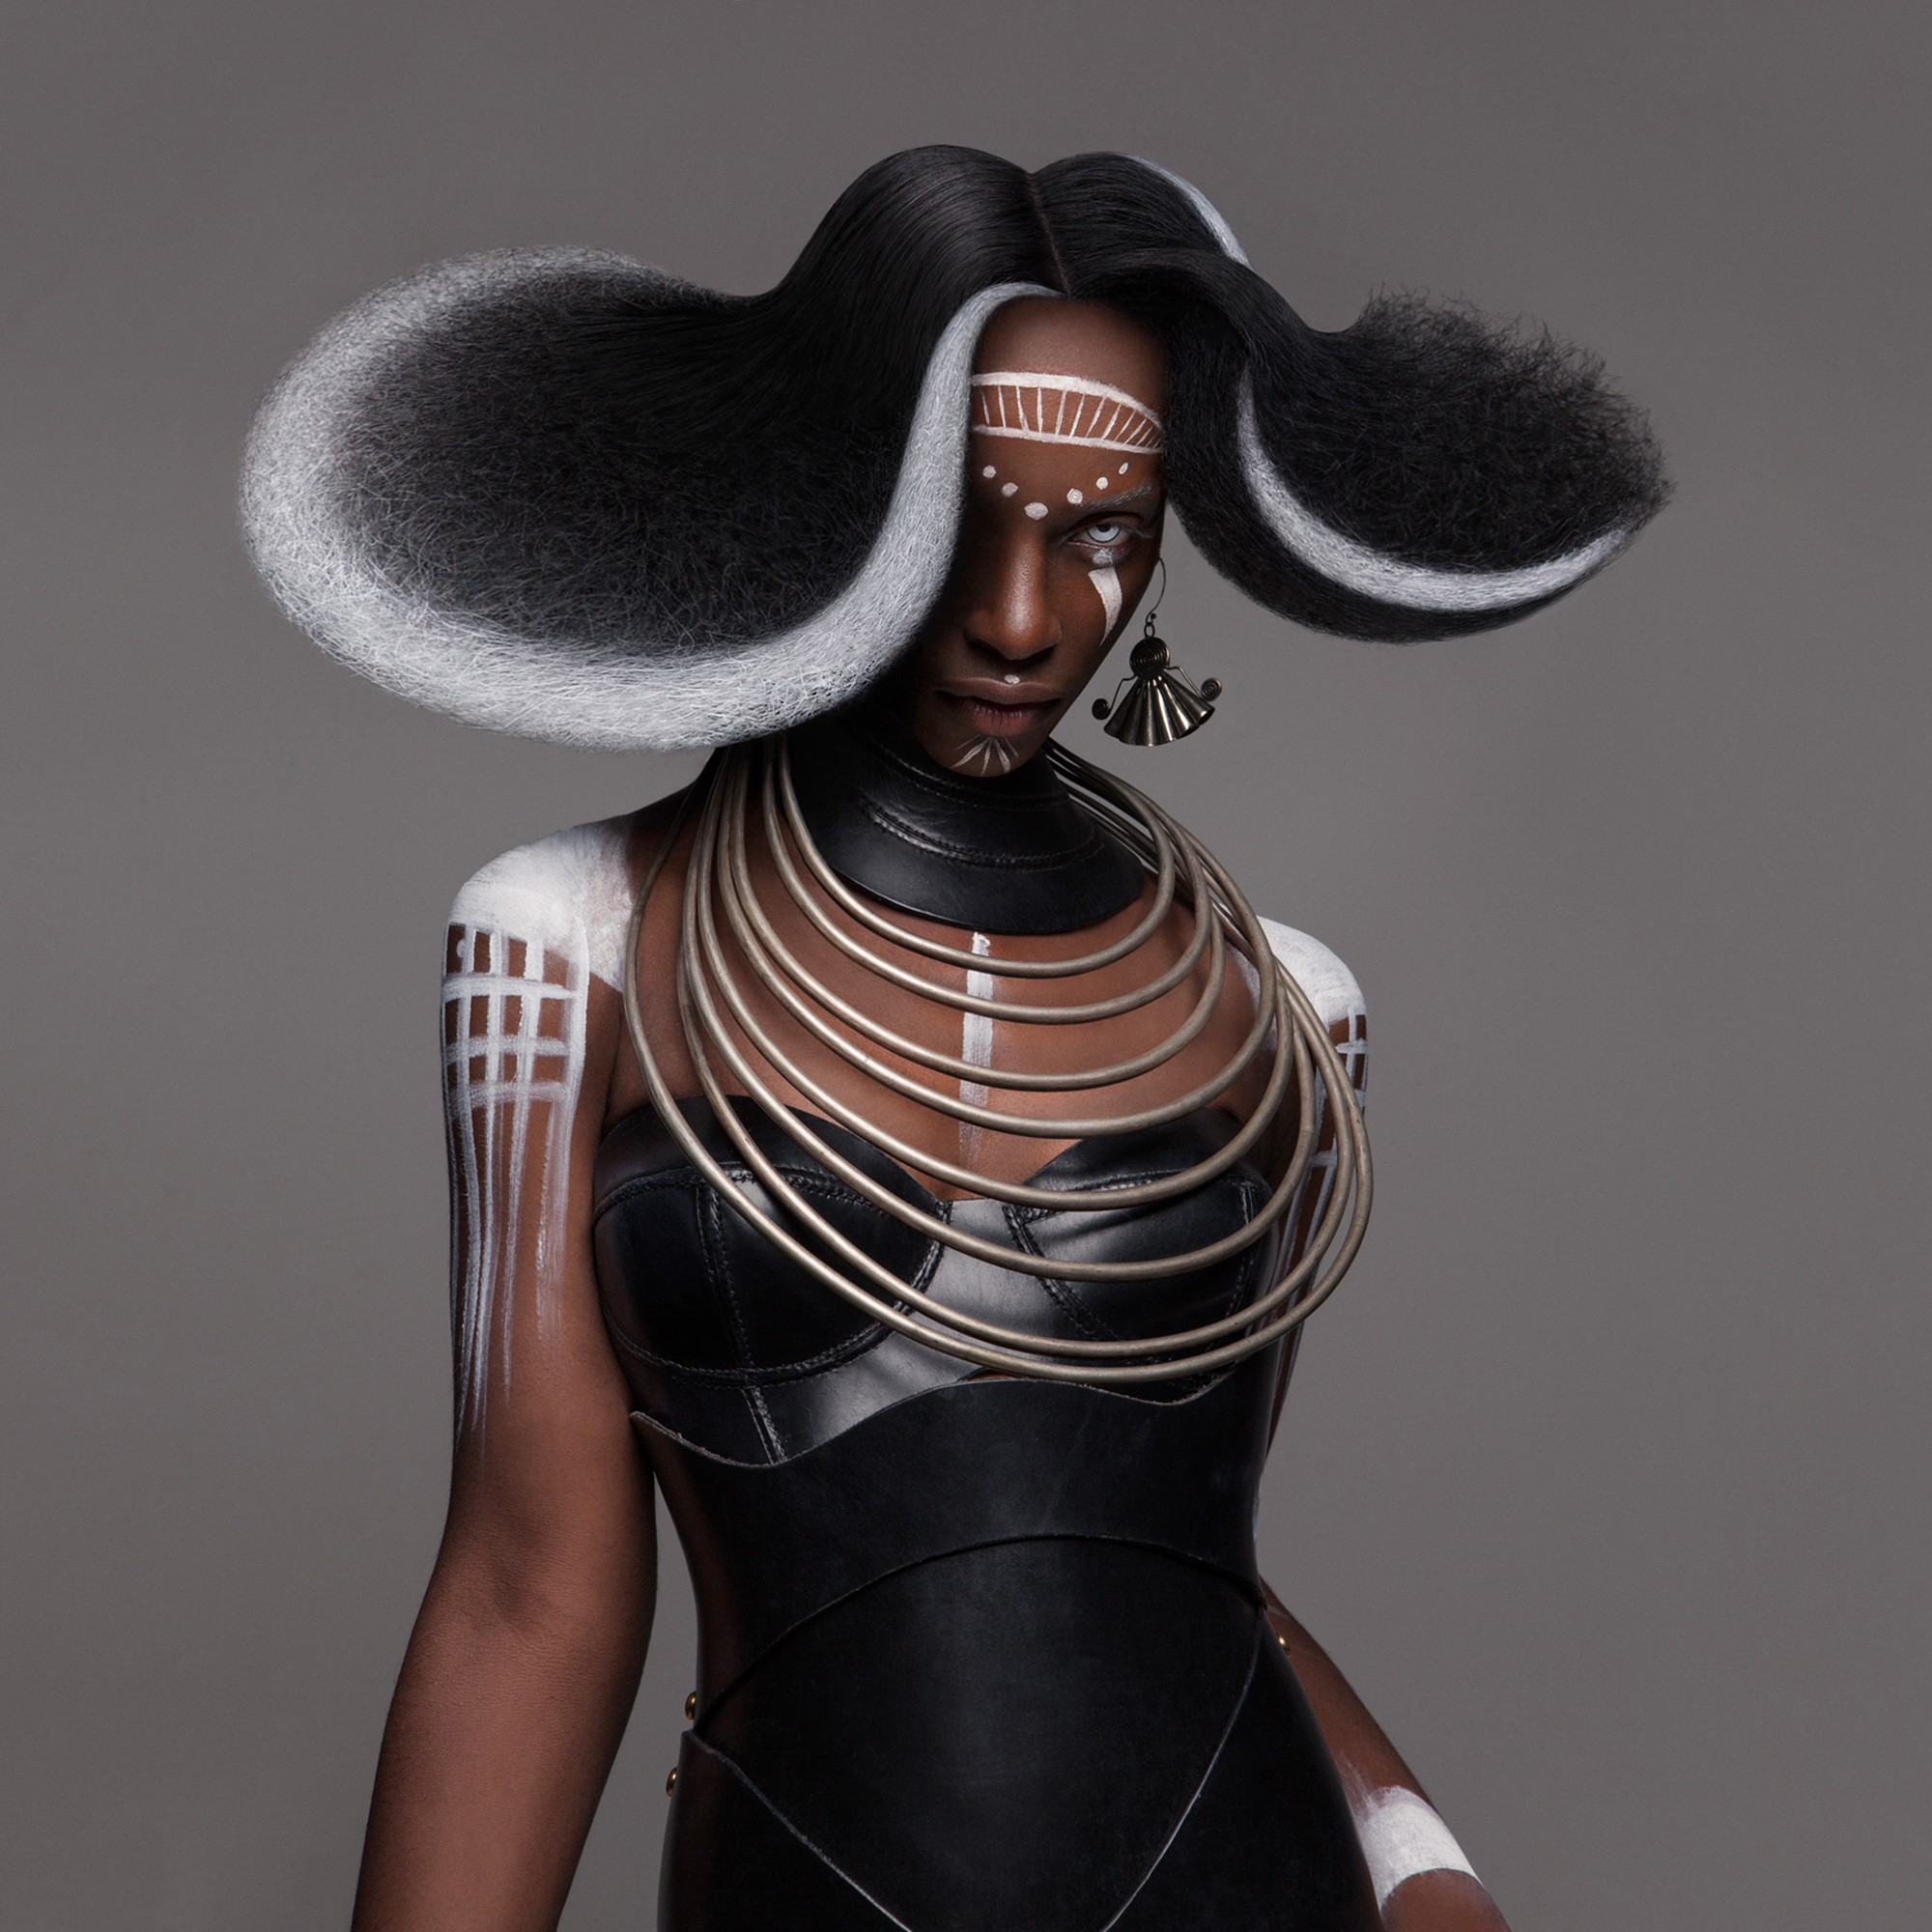 Armour: Empowering Hairstyle Imagery by Luke Nugent and Lisa Farrall